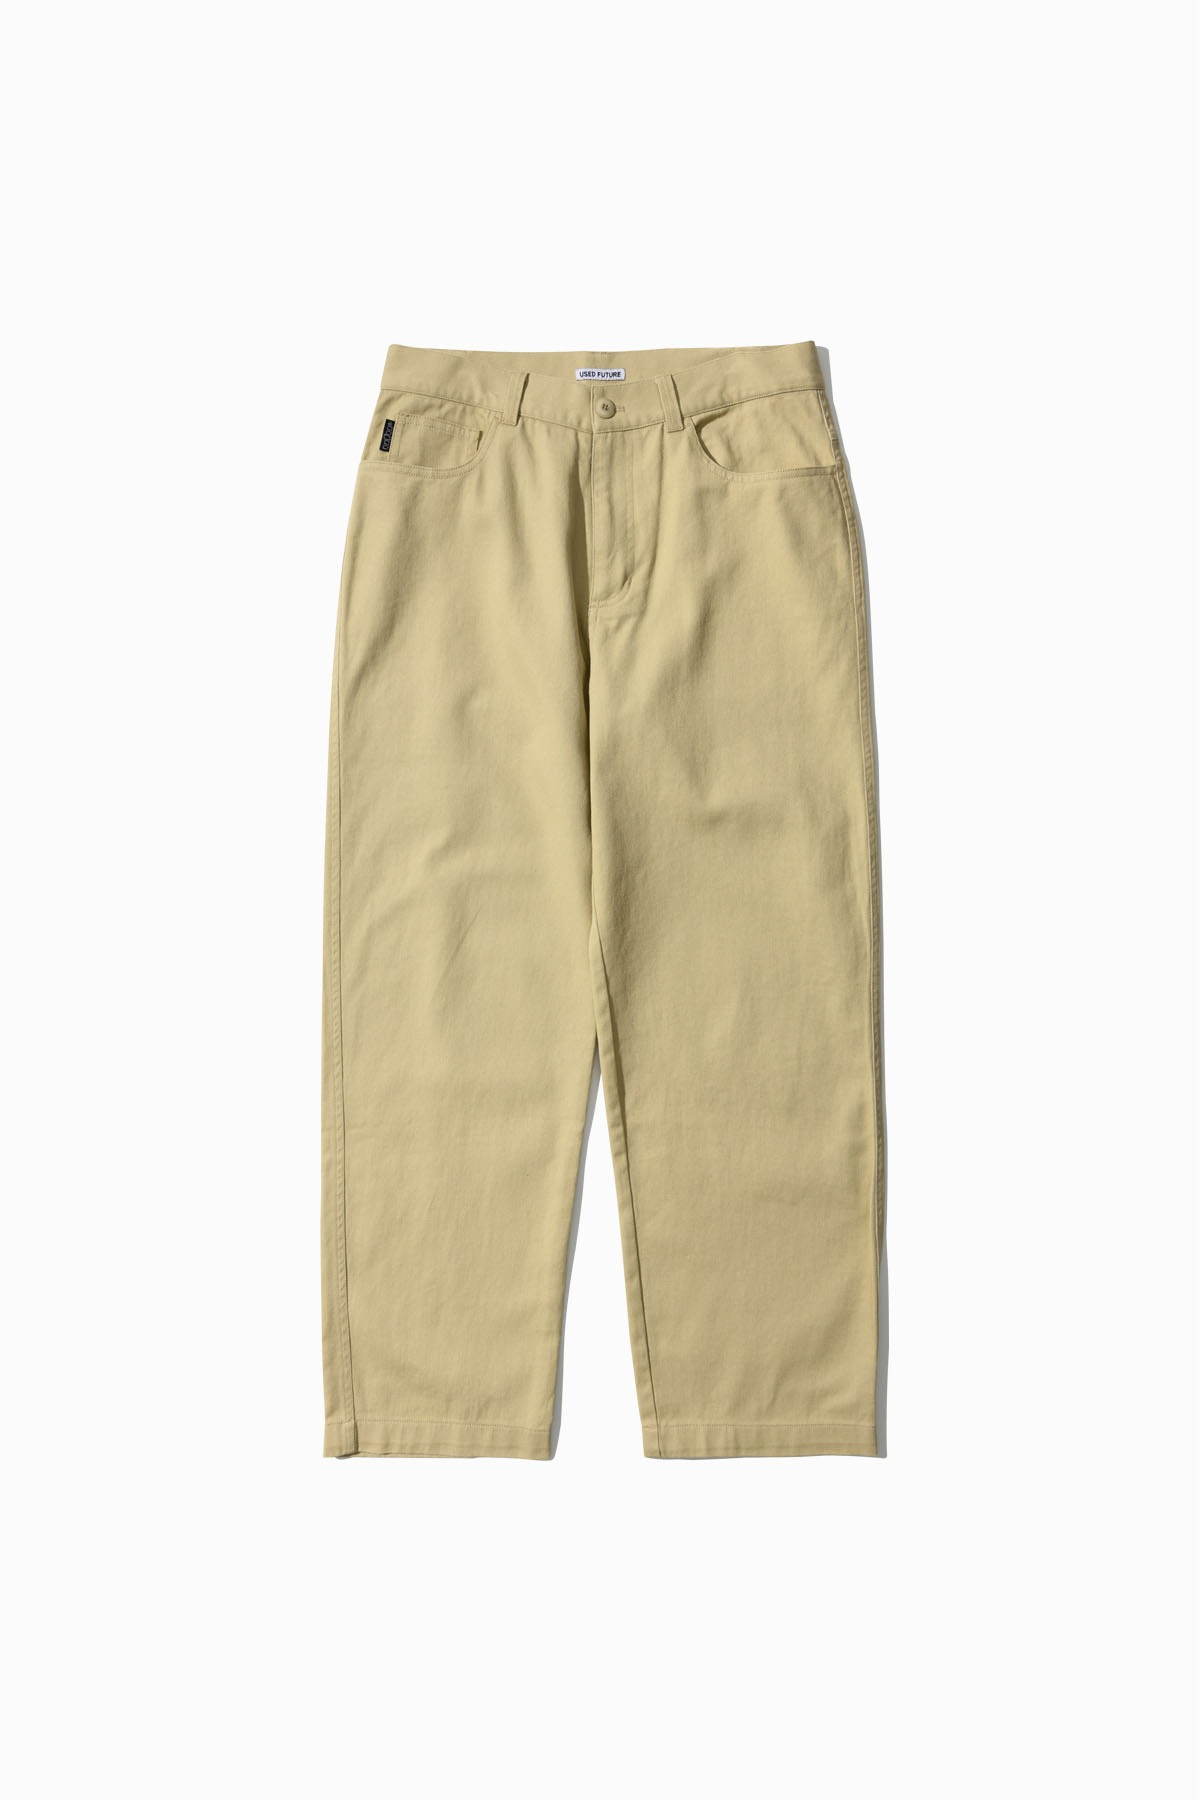 WORK PANTS_BEIGE